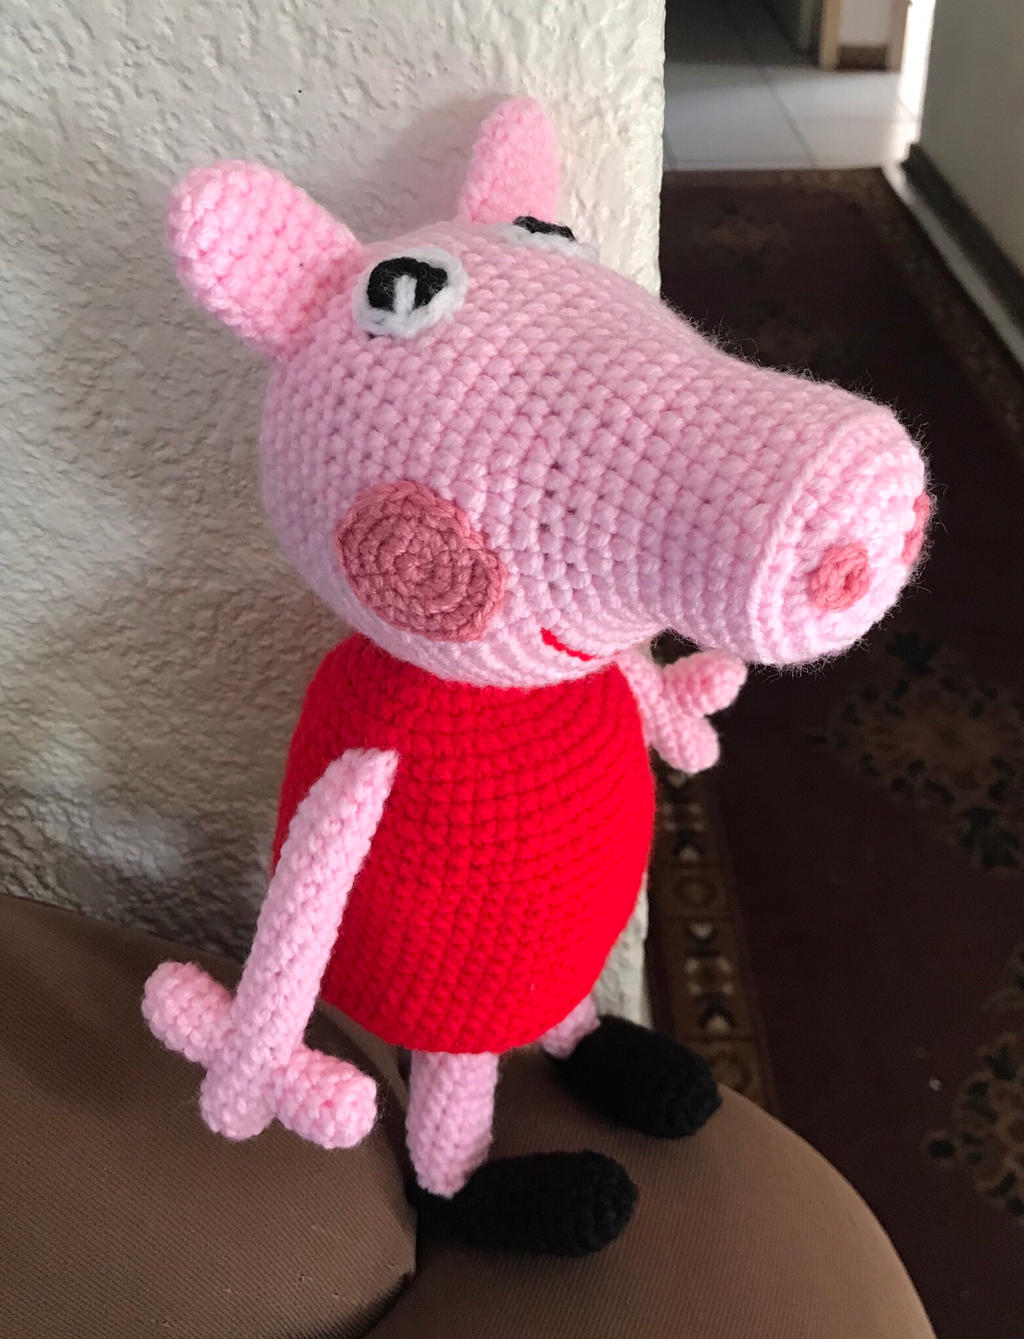 Amigurumi Peppa Pig Read Description Peppa Pig Crochet Pattern PDF ... | 1339x1024